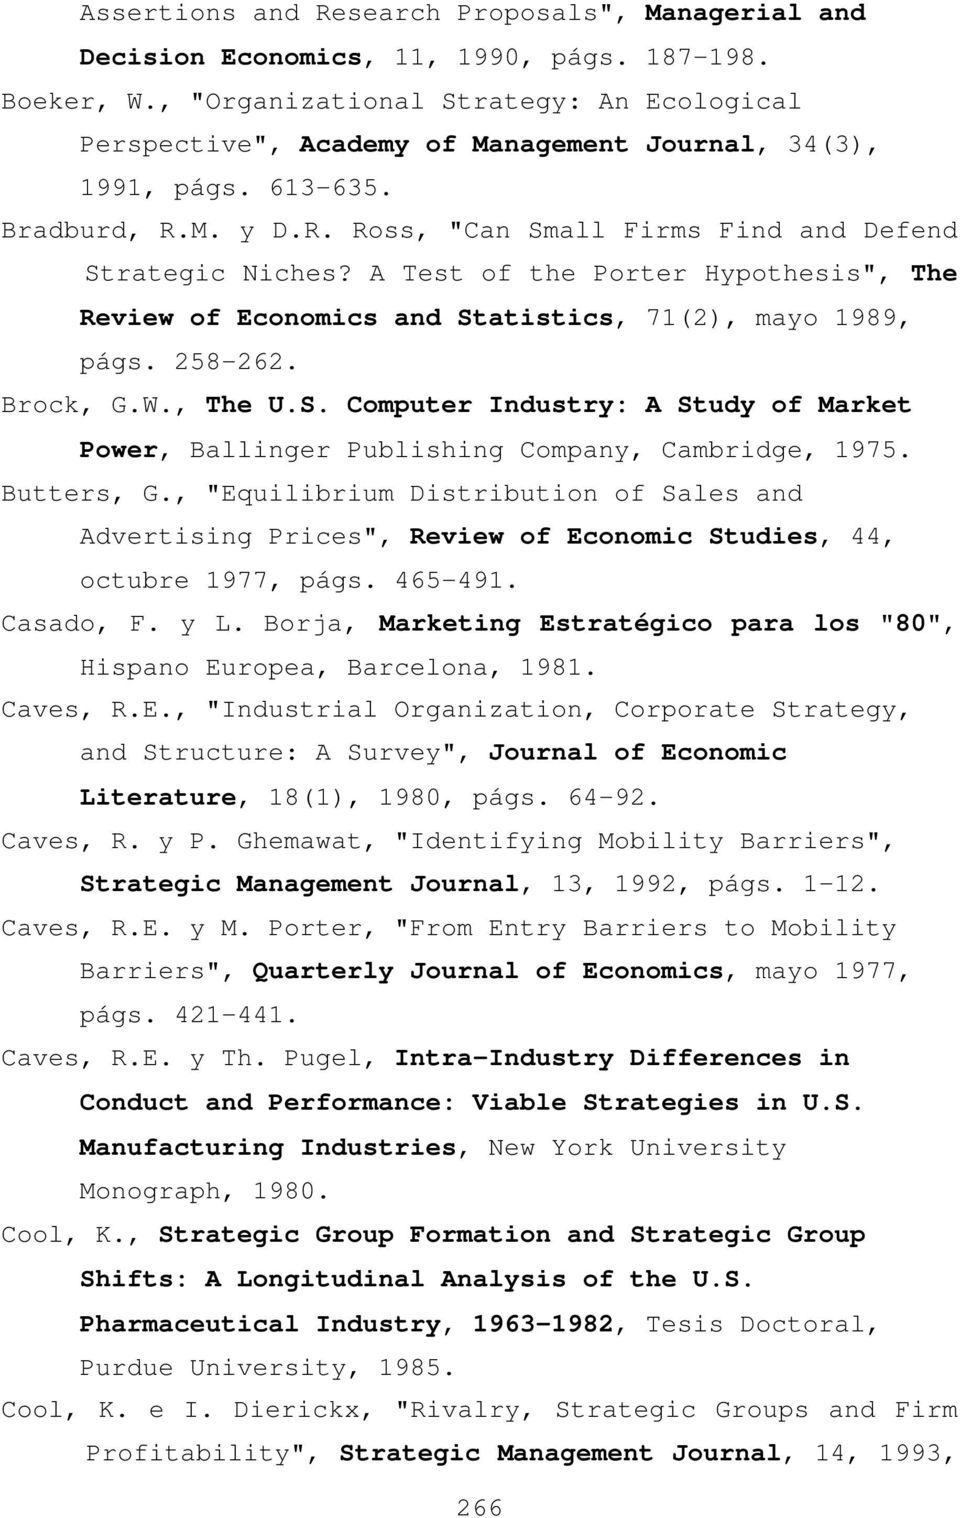 "A Test of the Porter Hypothesis"", The Review of Economics and Statistics, 71(2), mayo 1989, págs. 258-262. Brock, G.W., The U.S. Computer Industry: A Study of Market Power, Ballinger Publishing Company, Cambridge, 1975."